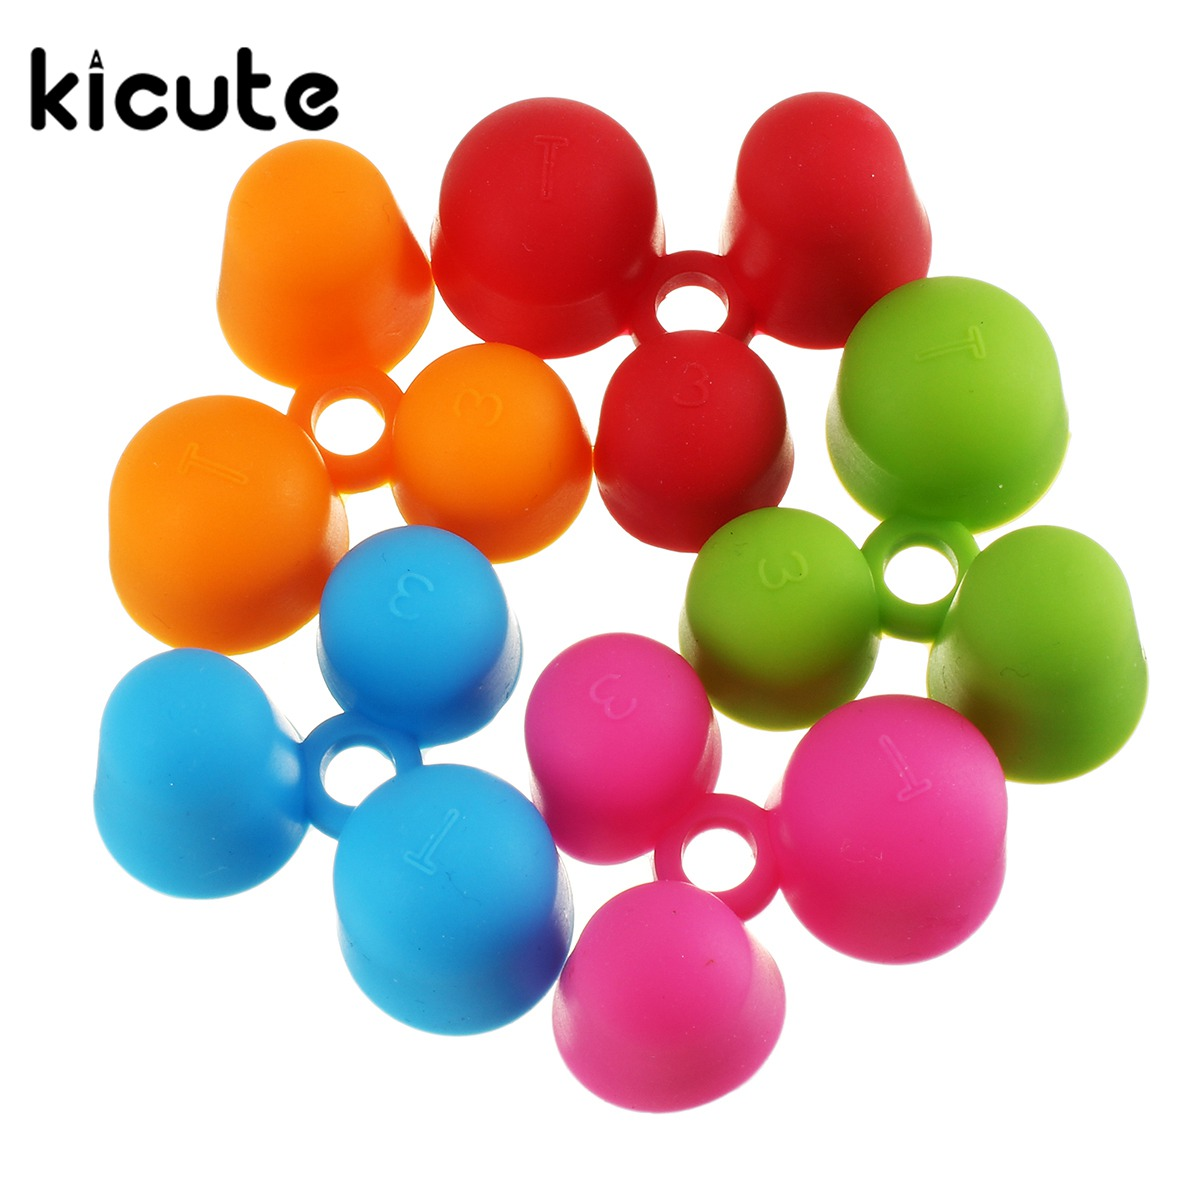 Kicute 5pcs/lot Pencil Grips Occupational Therapy Handwriting Aid Kids School Stationery Pen Control Right Silicone Writing